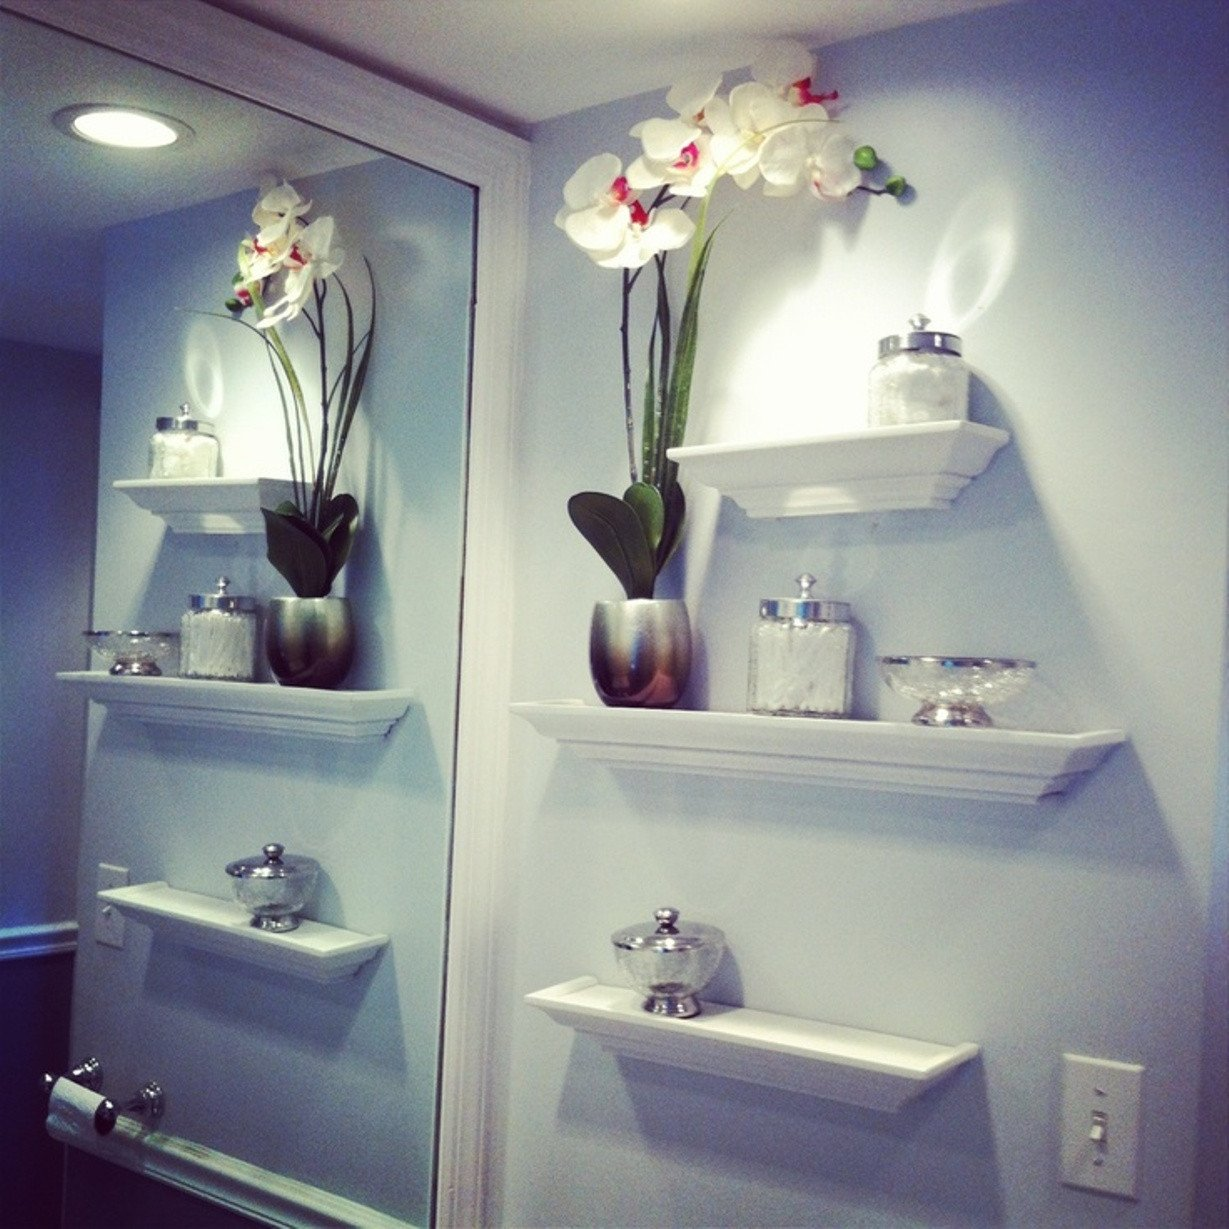 Wall Decor for Bathroom Ideas Fresh Best Bathroom Wall Shelving Idea to Adorn Your Room